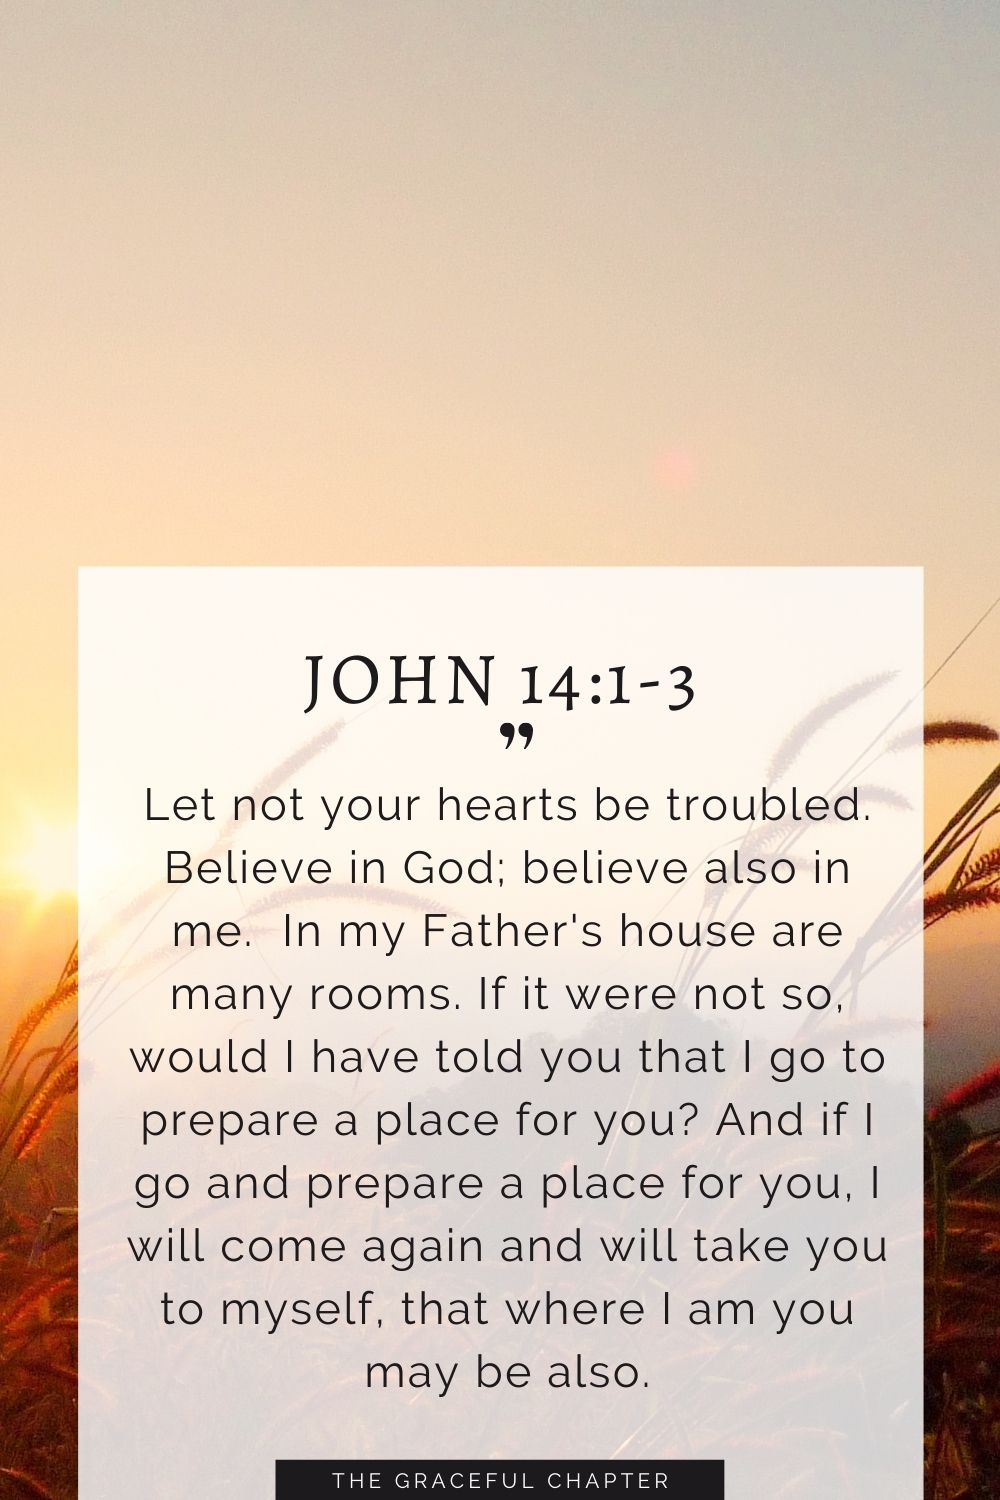 Let not your hearts be troubled. Believe in God; believe also in me. In my Father's house are many rooms. If it were not so, would I have told you that I go to prepare a place for you? And if I go and prepare a place for you, I will come again and will take you to myself, that where I am you may be also. John 14:1-3